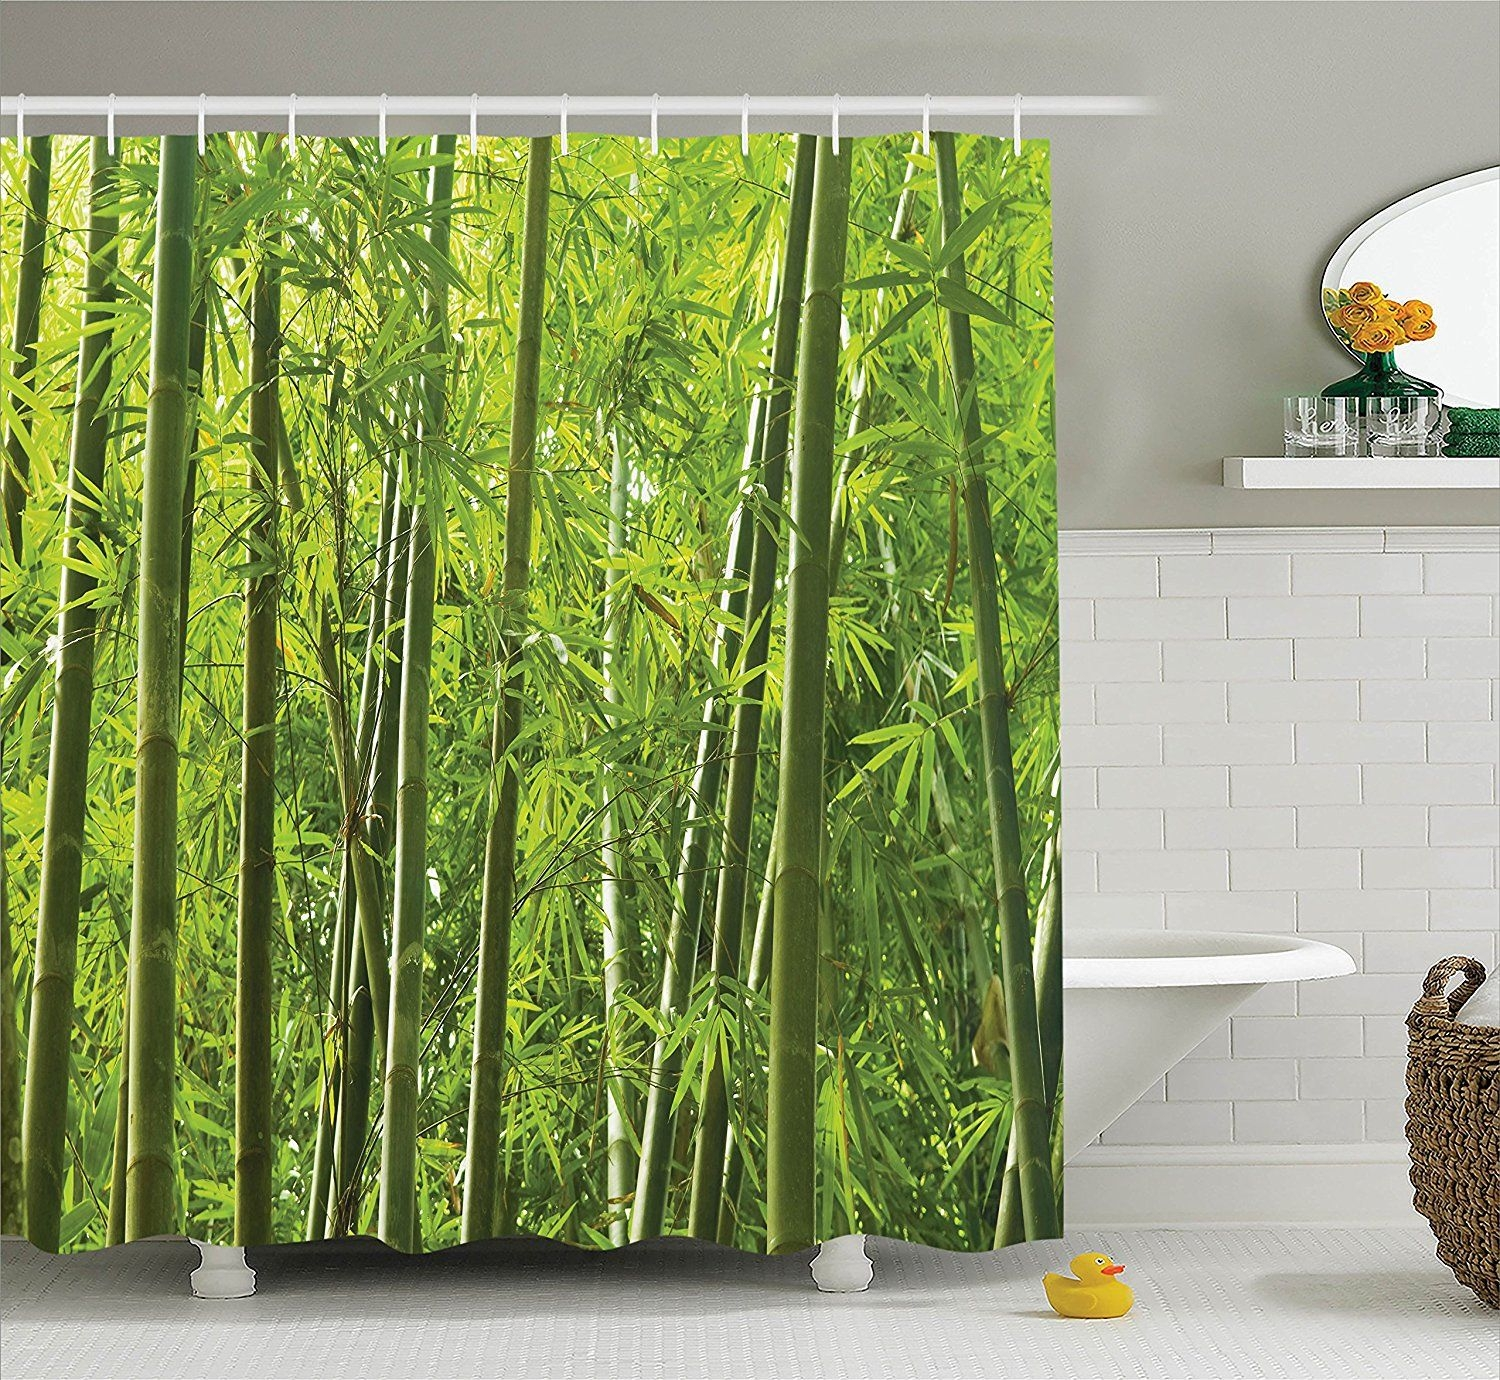 Bamboo Decor Shower Curtain Set Exotic Tropical Bamboo Forest With Fresh Color Asian Nature